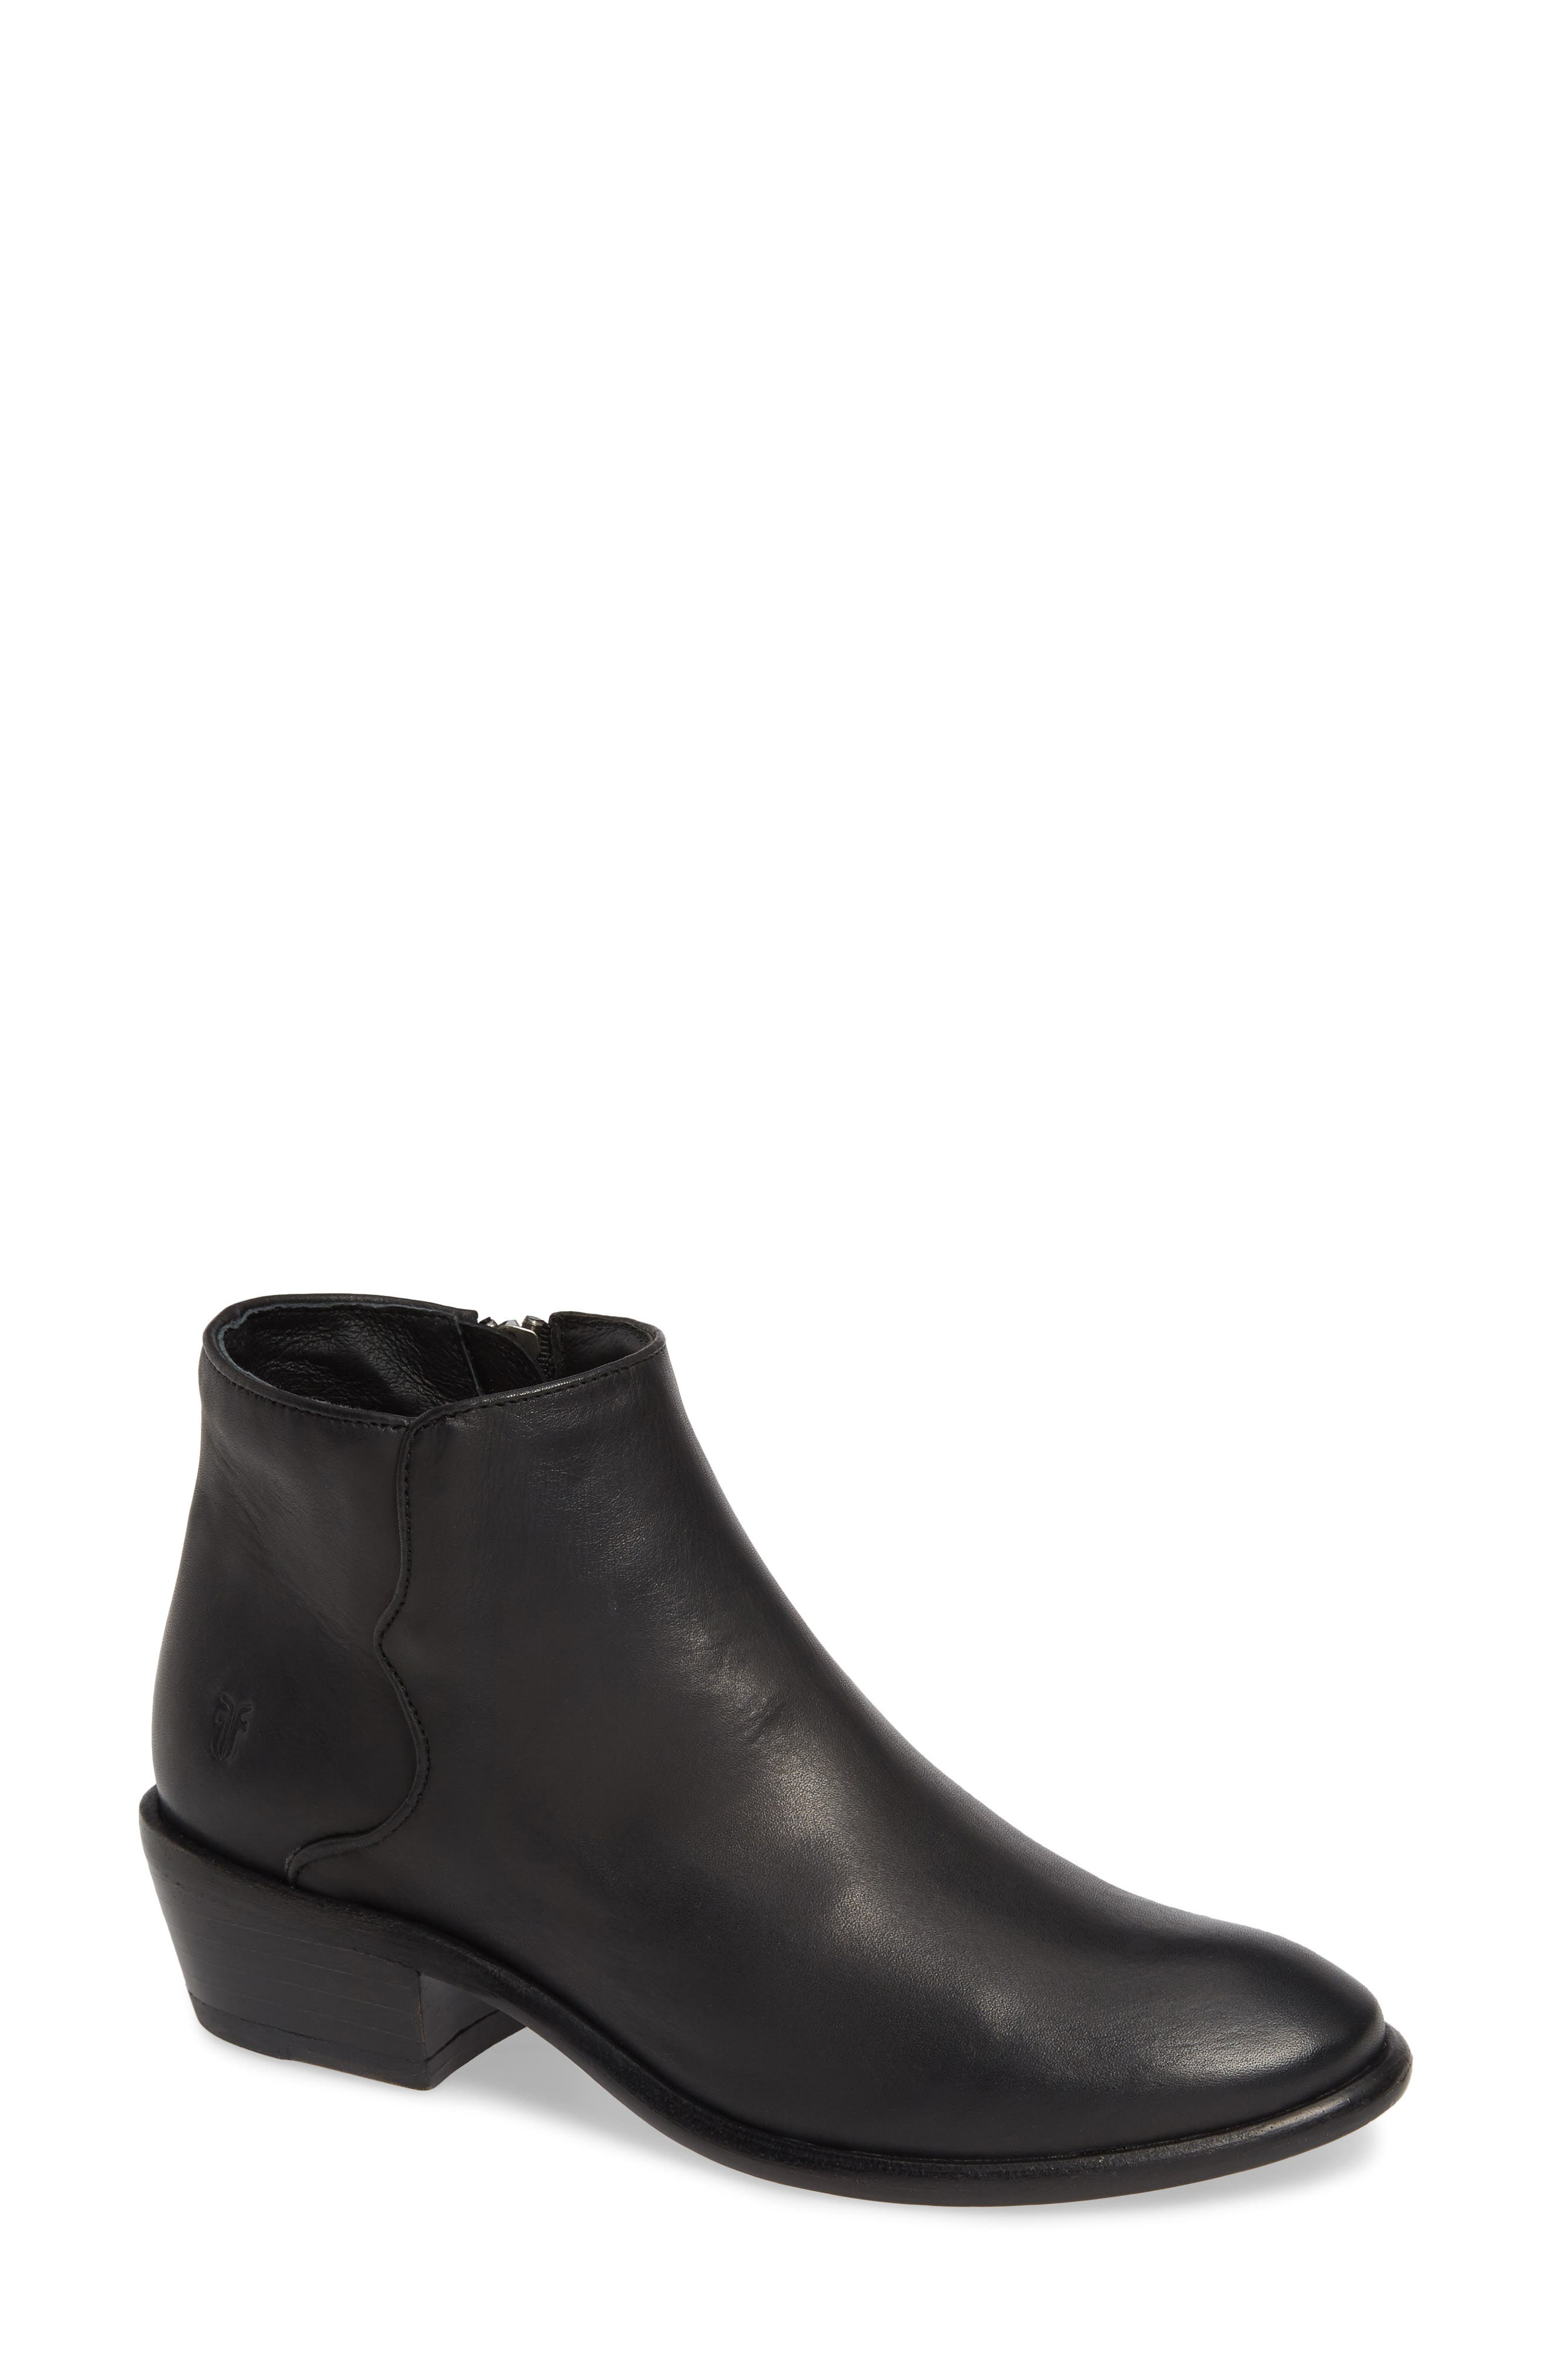 FRYE Carson Piping Bootie, Main, color, BLACK